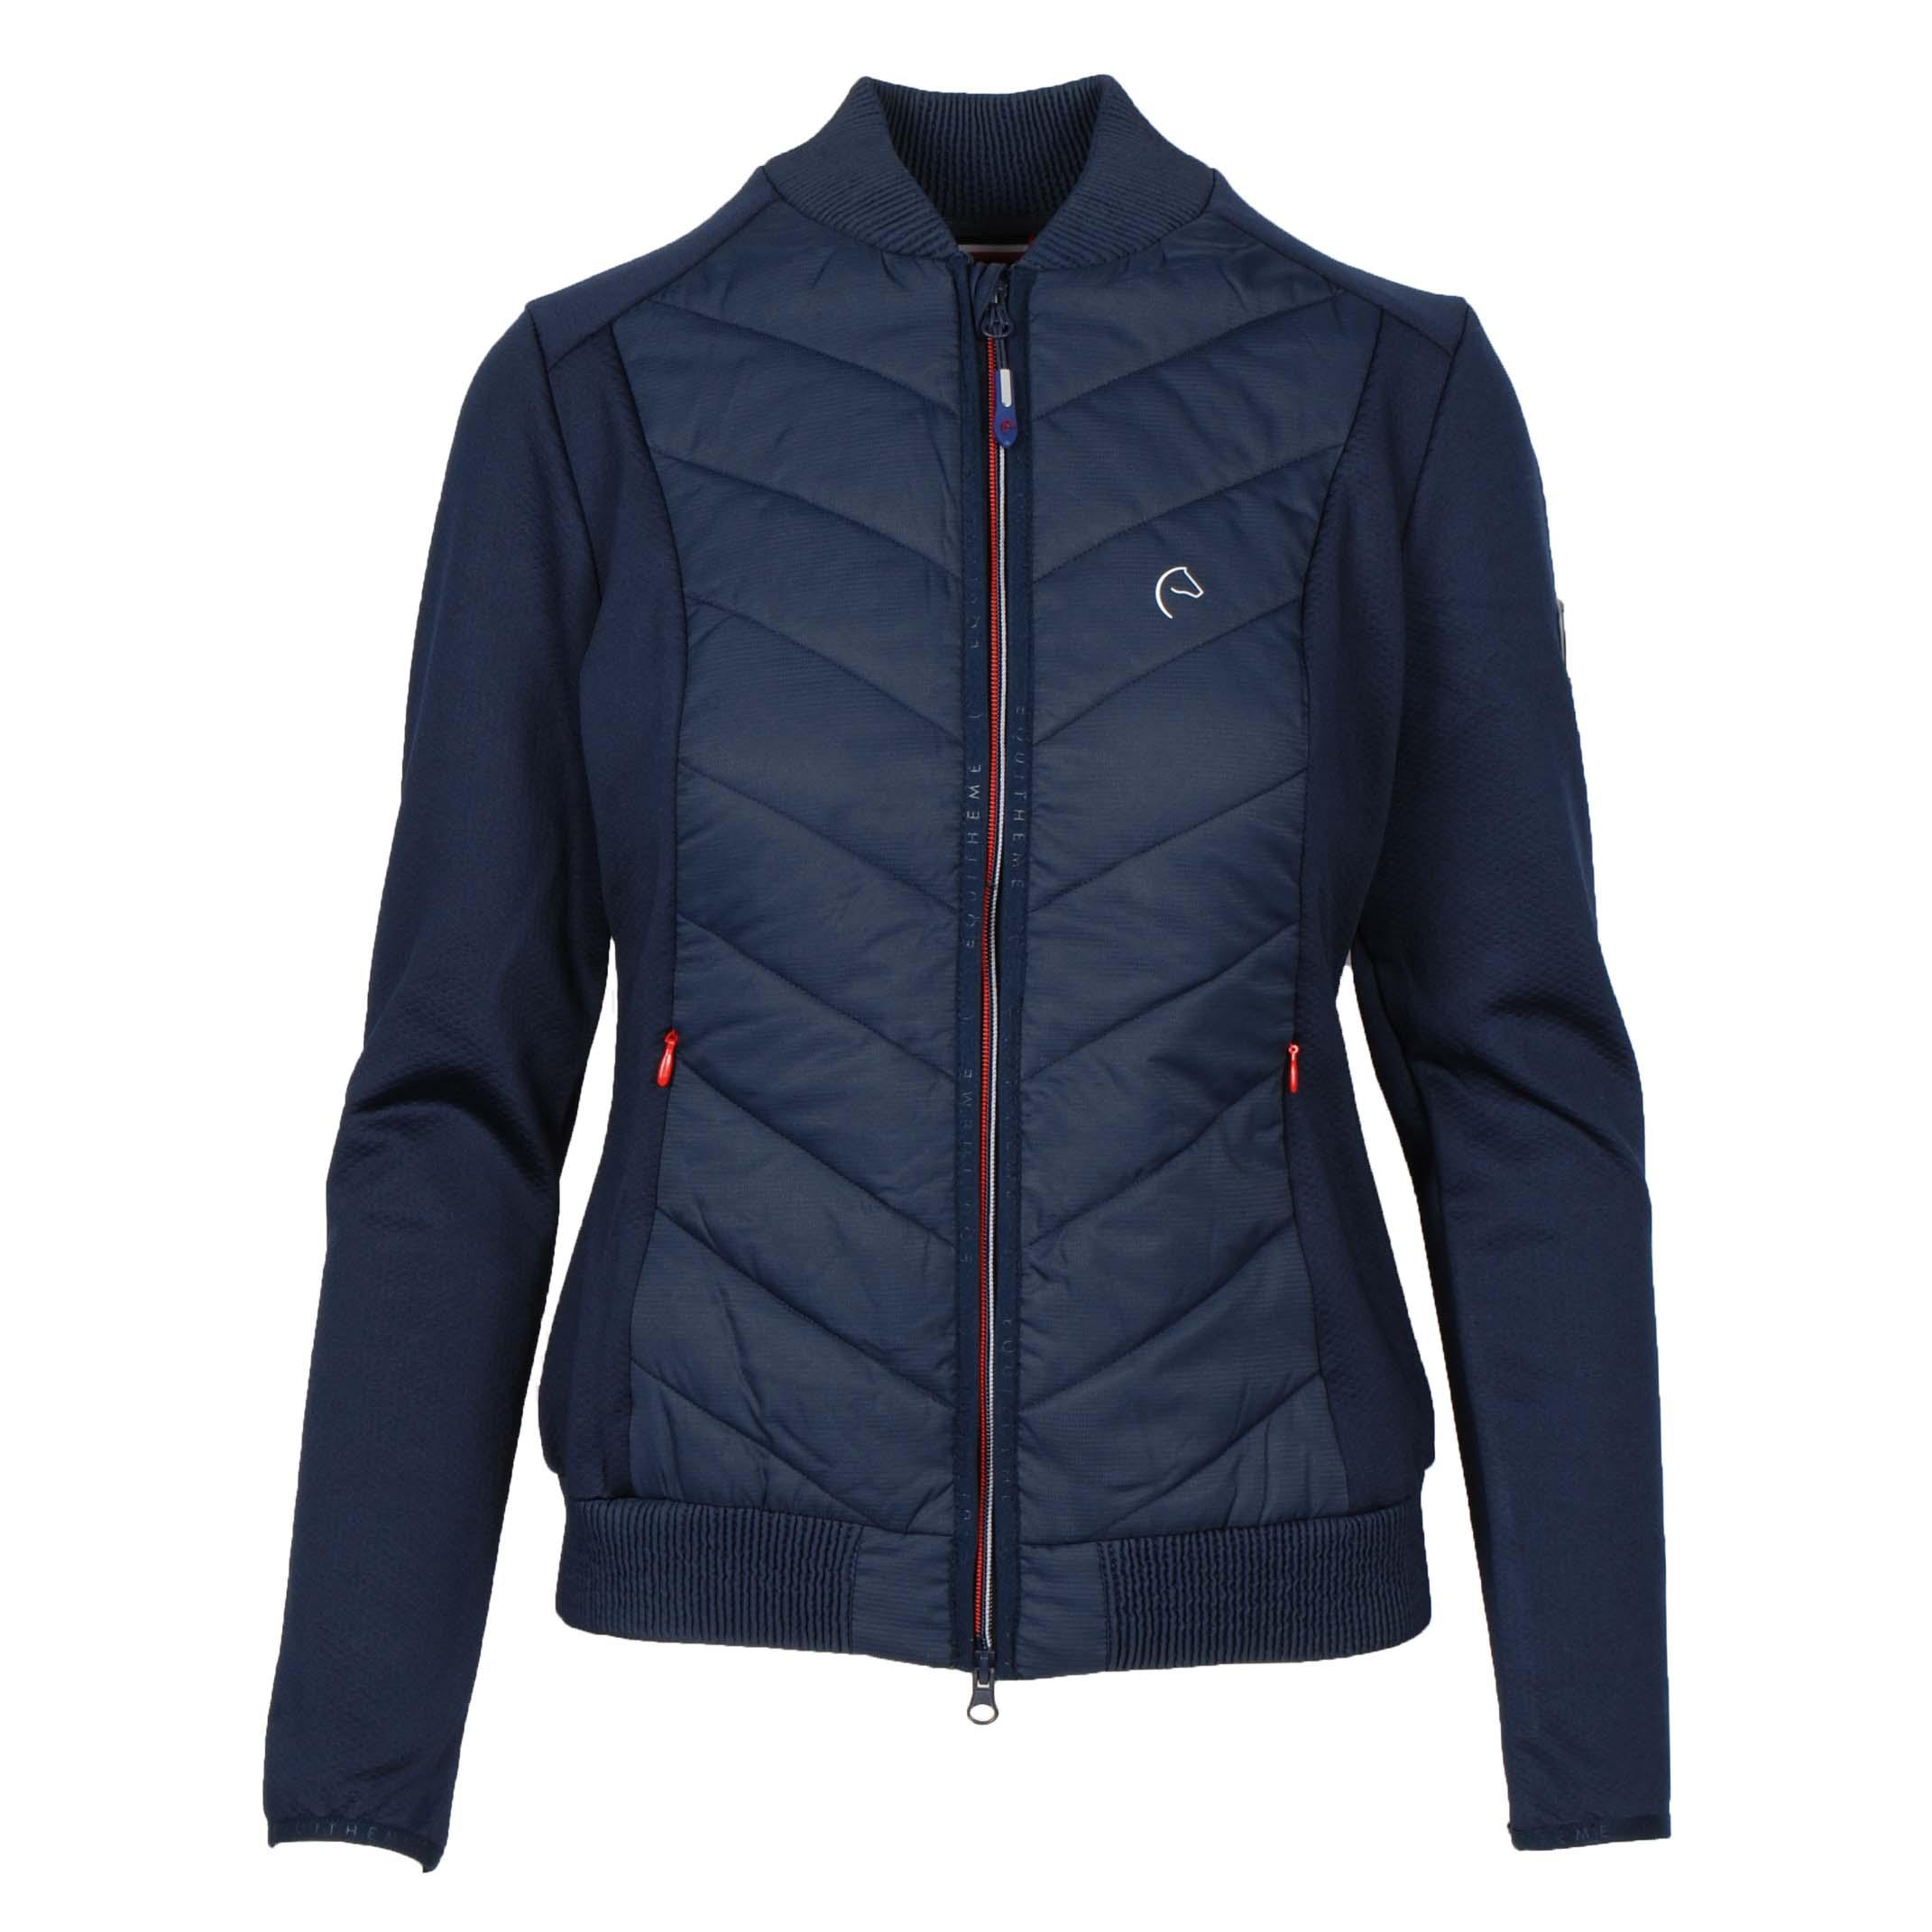 Equi Theme Aby techvest donkerblauw maat:s